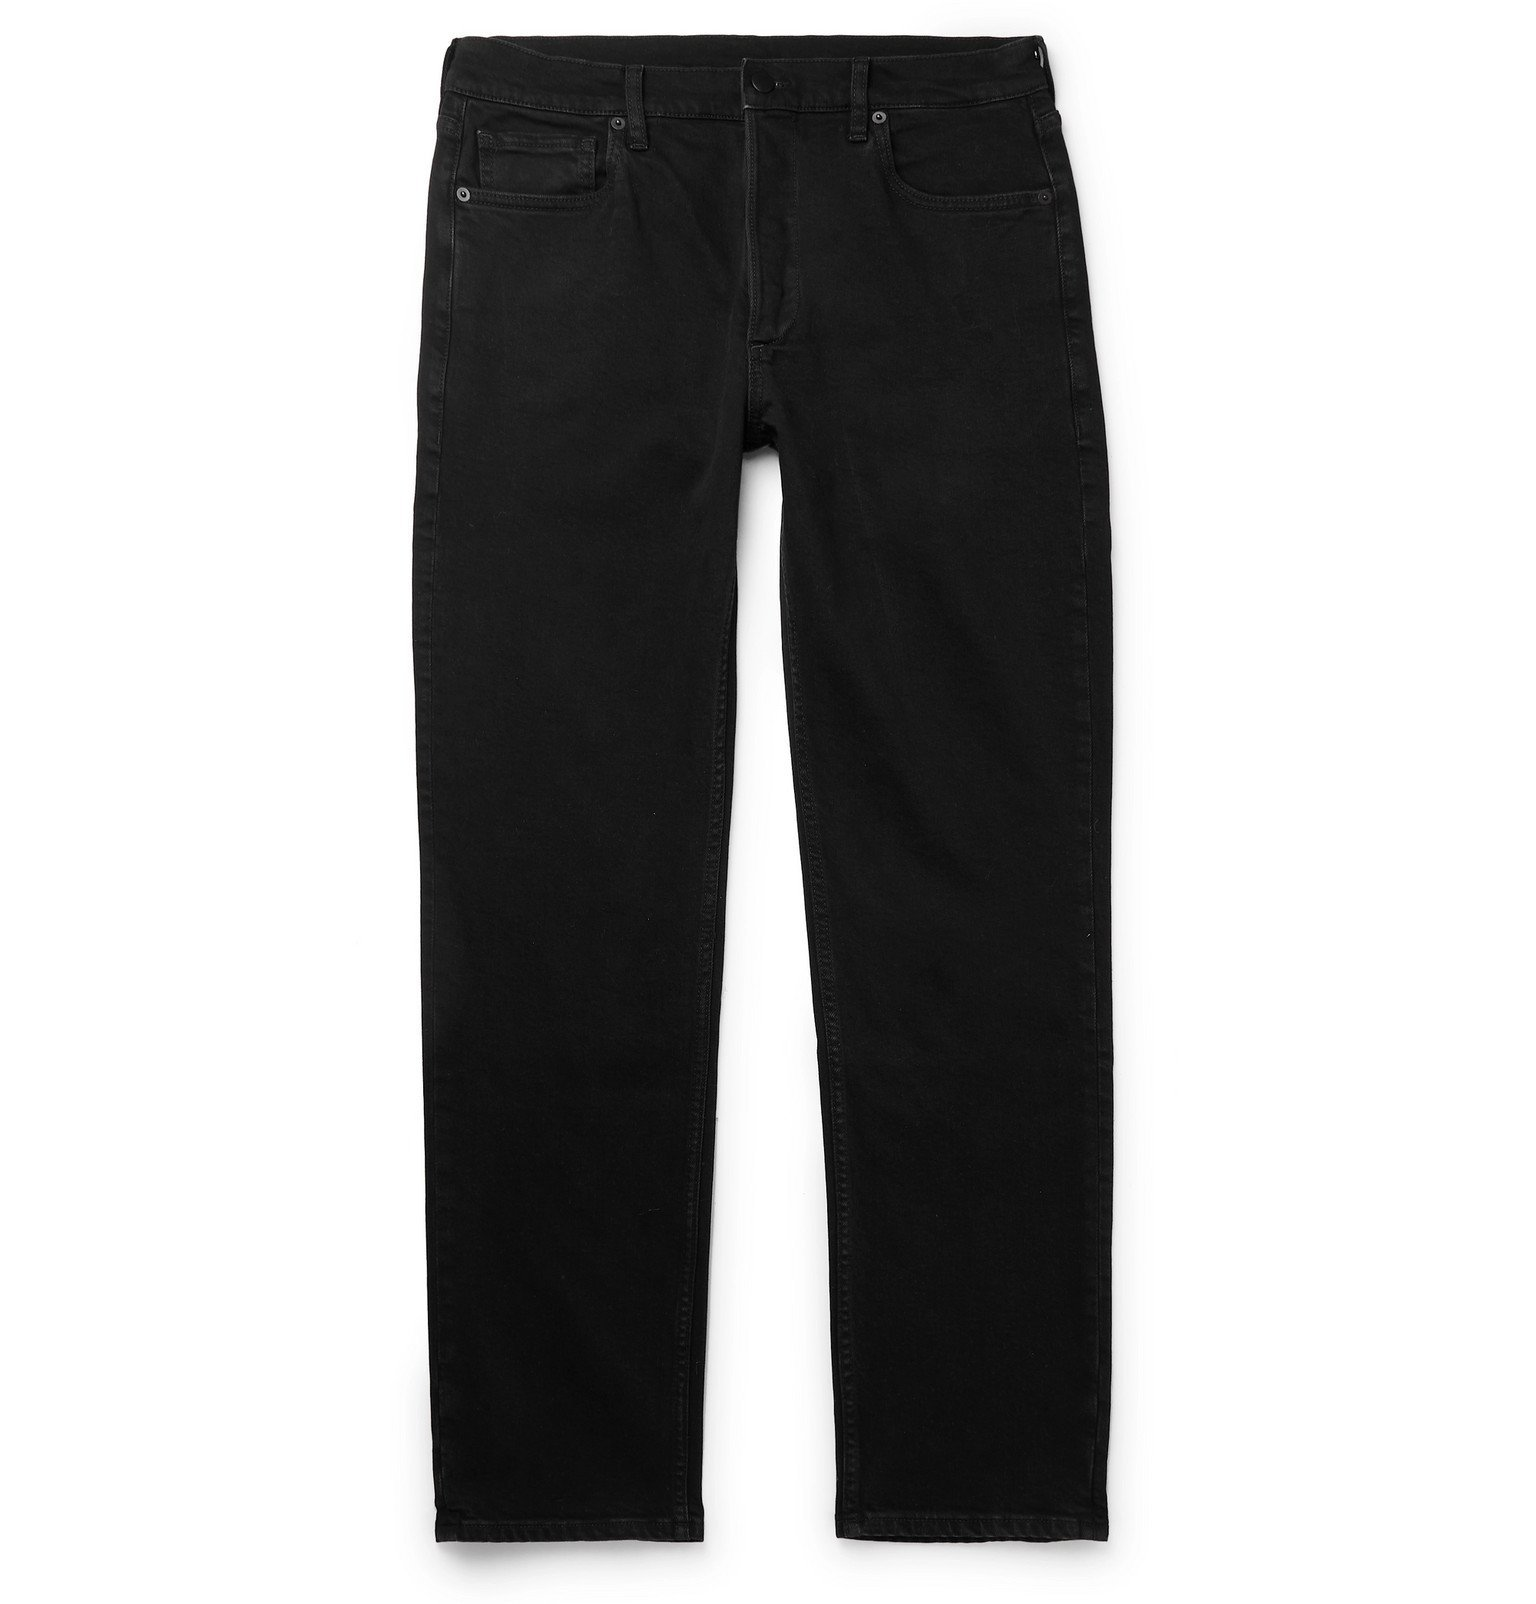 Saman Amel - Stretch-Denim Jeans - Black